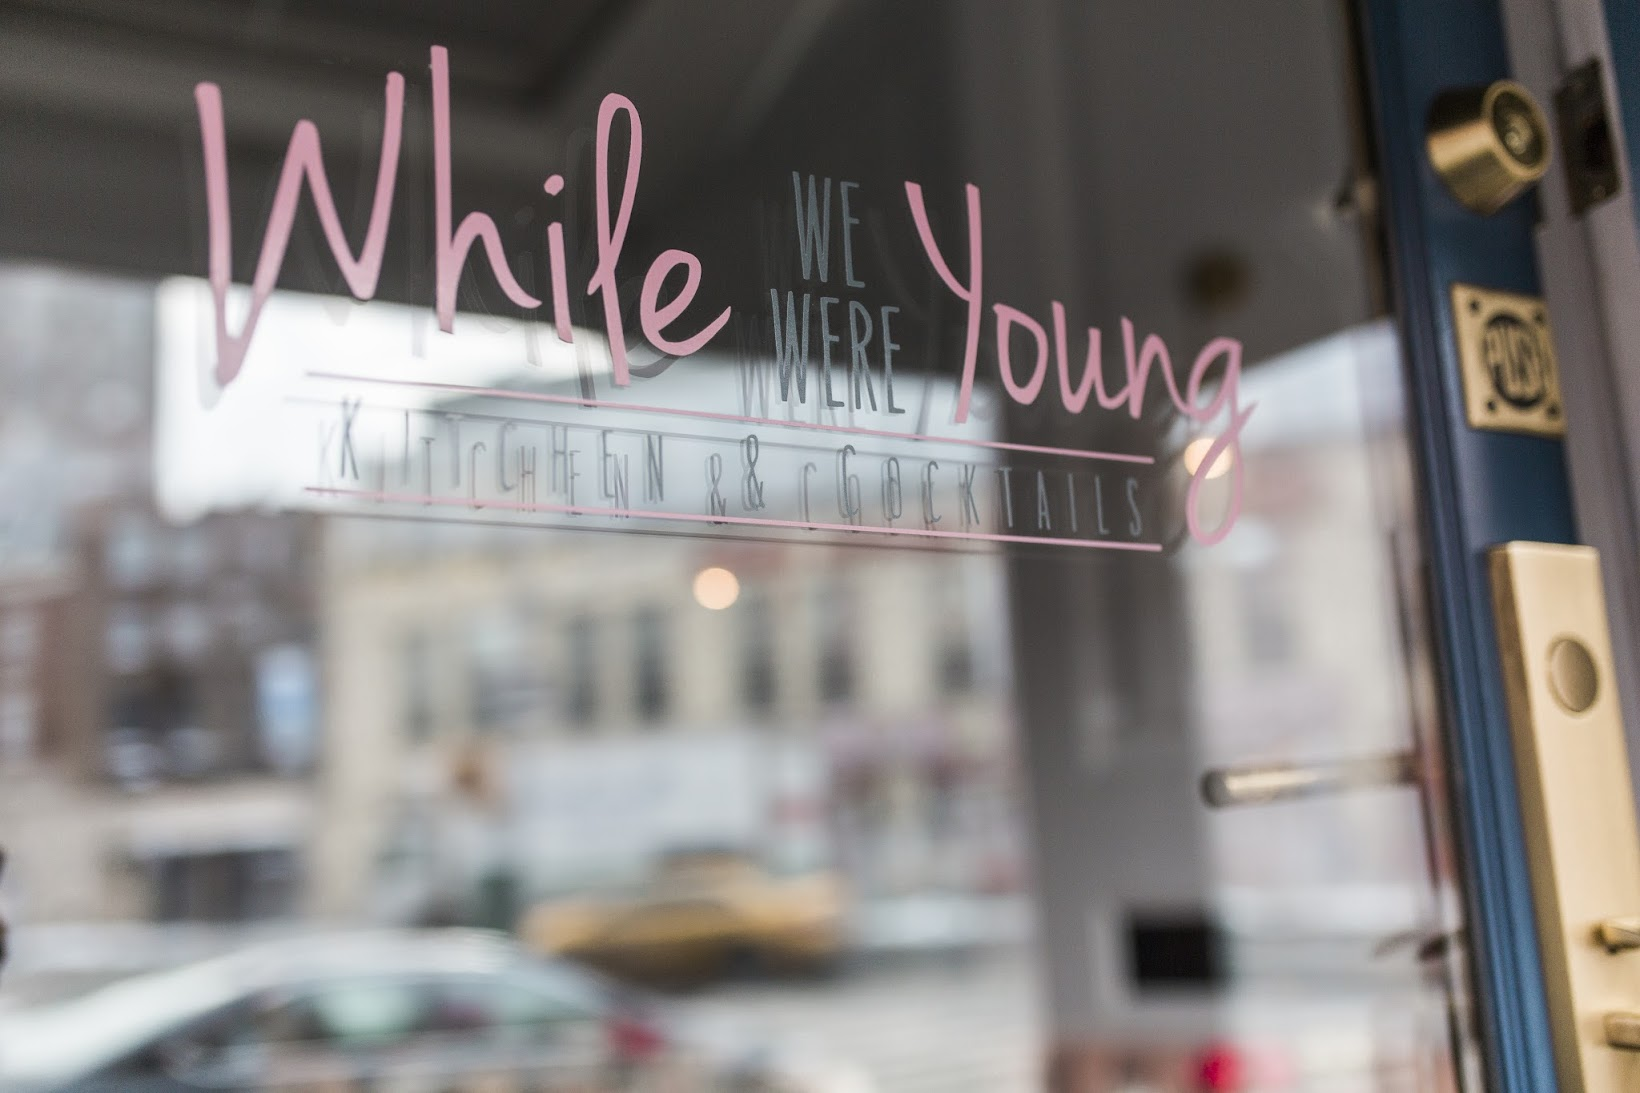 While we were young NYC restaurant and bar, pink couches, best cocktails in NYC west village, Cynthia Rowley Floral Lace Ruffle Sleeve dress, NYFW